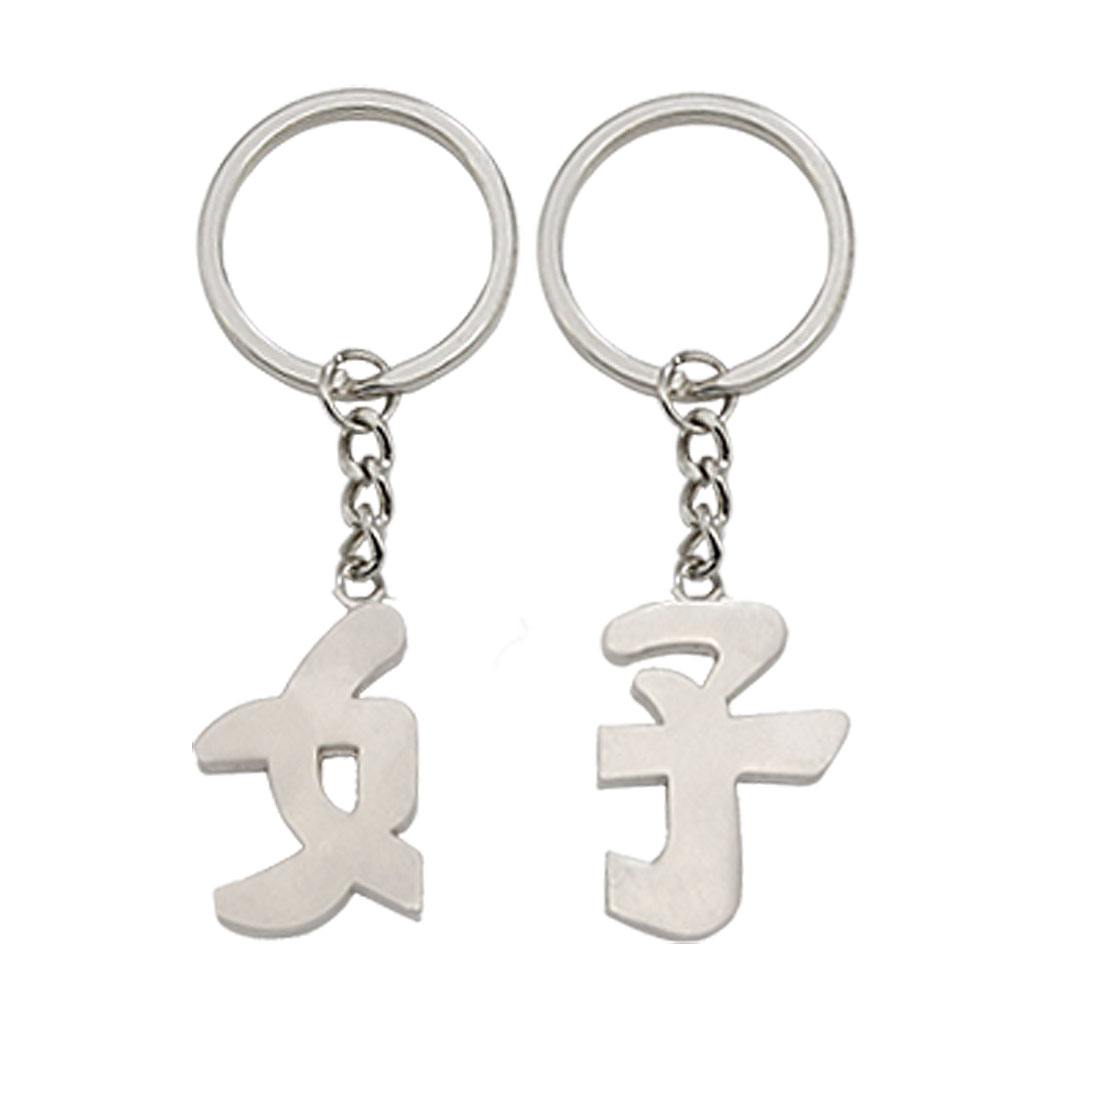 Magnetic Chinese Characters Good Couple Keychain Set of 2